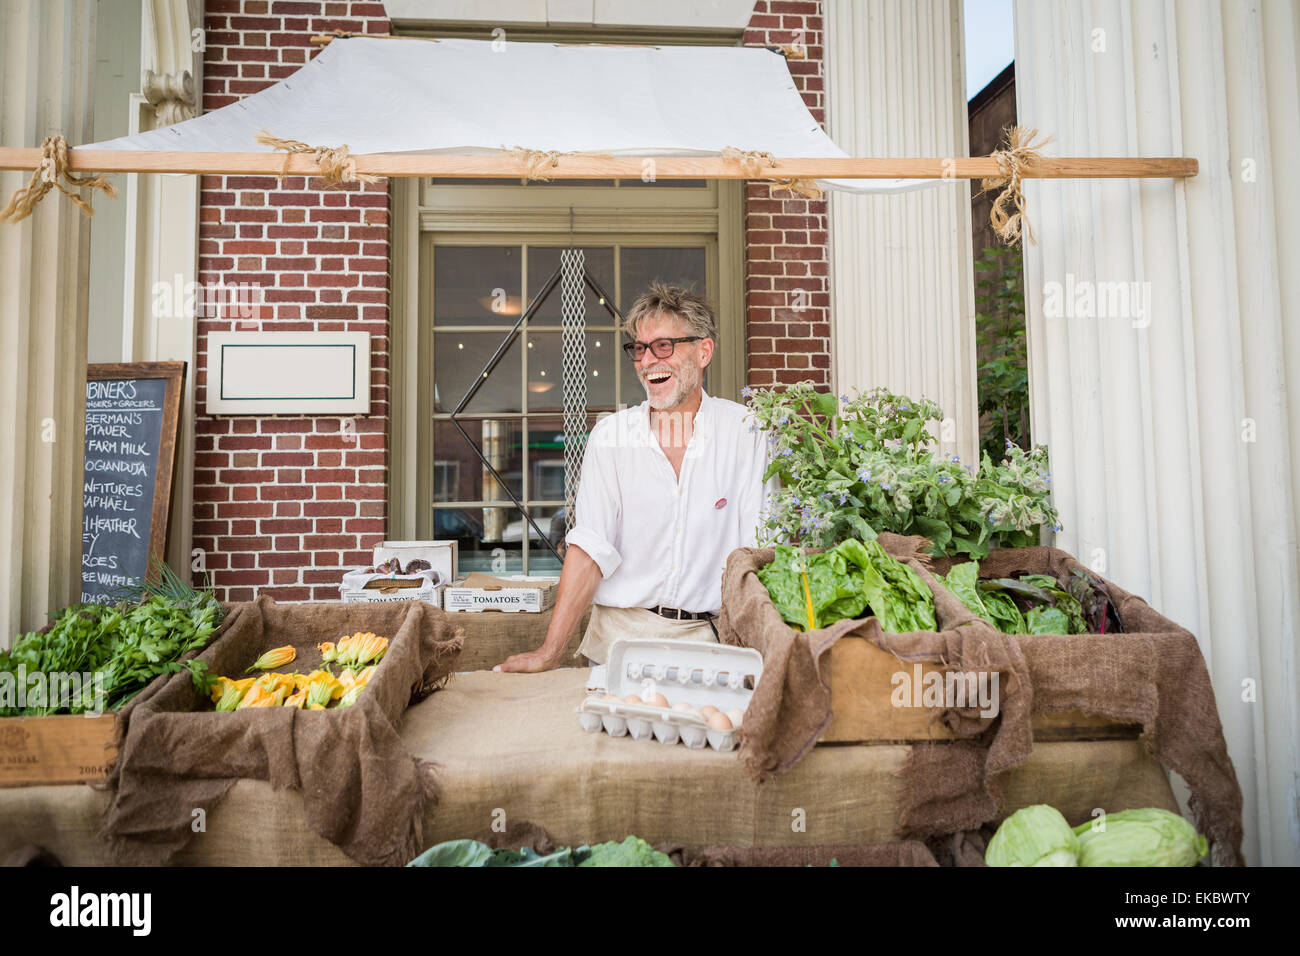 Farmer selling organic eggs and vegetables on stall outside store - Stock Image